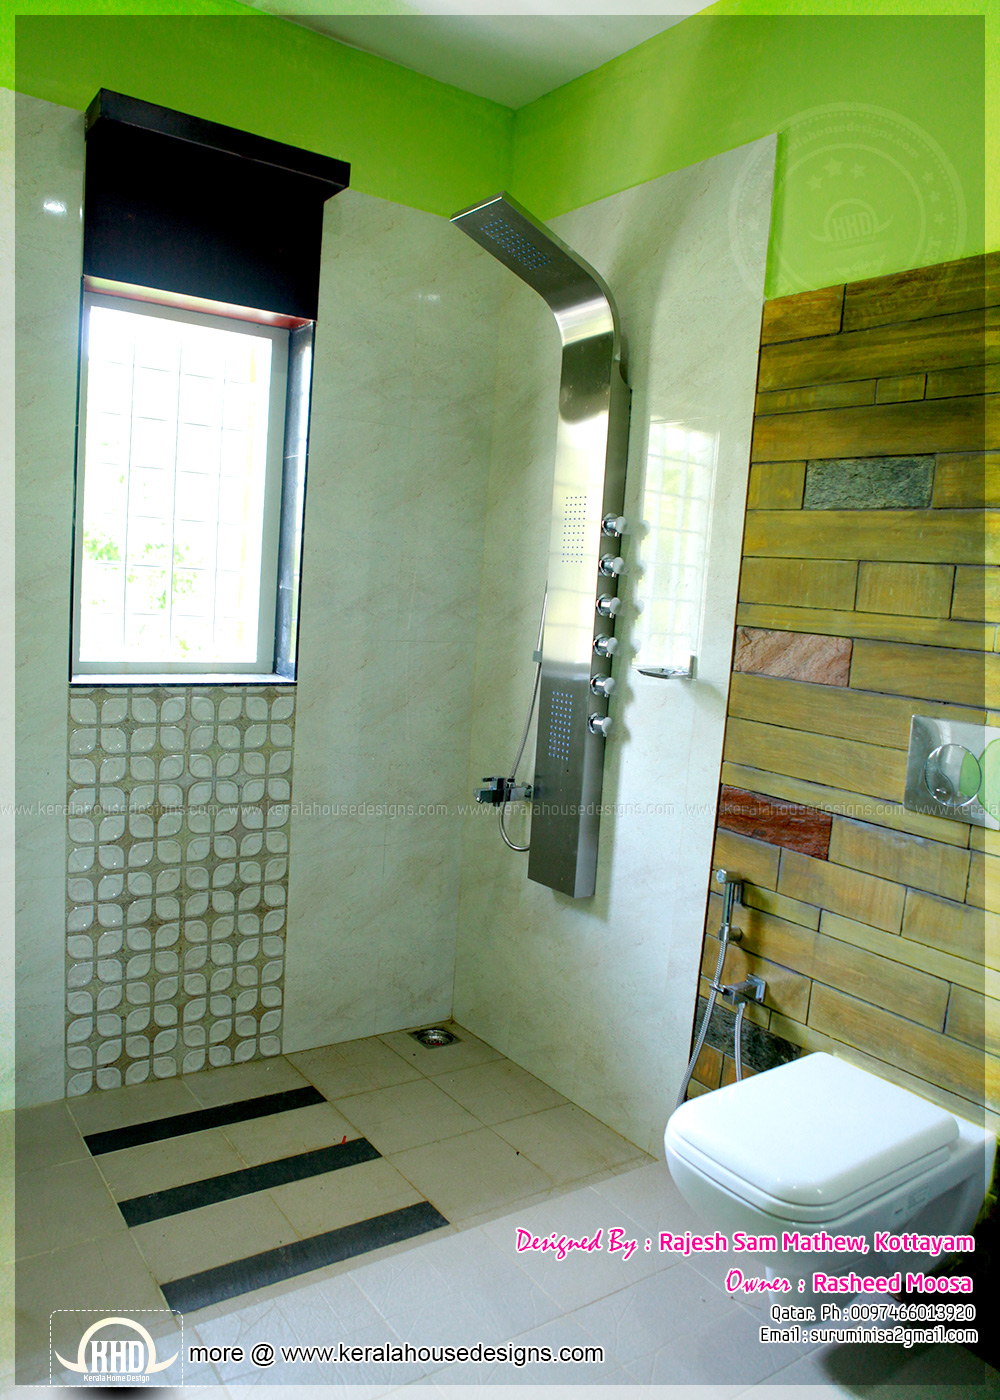 Bathroom Interior Design Ideas Kolkata ~ Kerala interior design with photos home